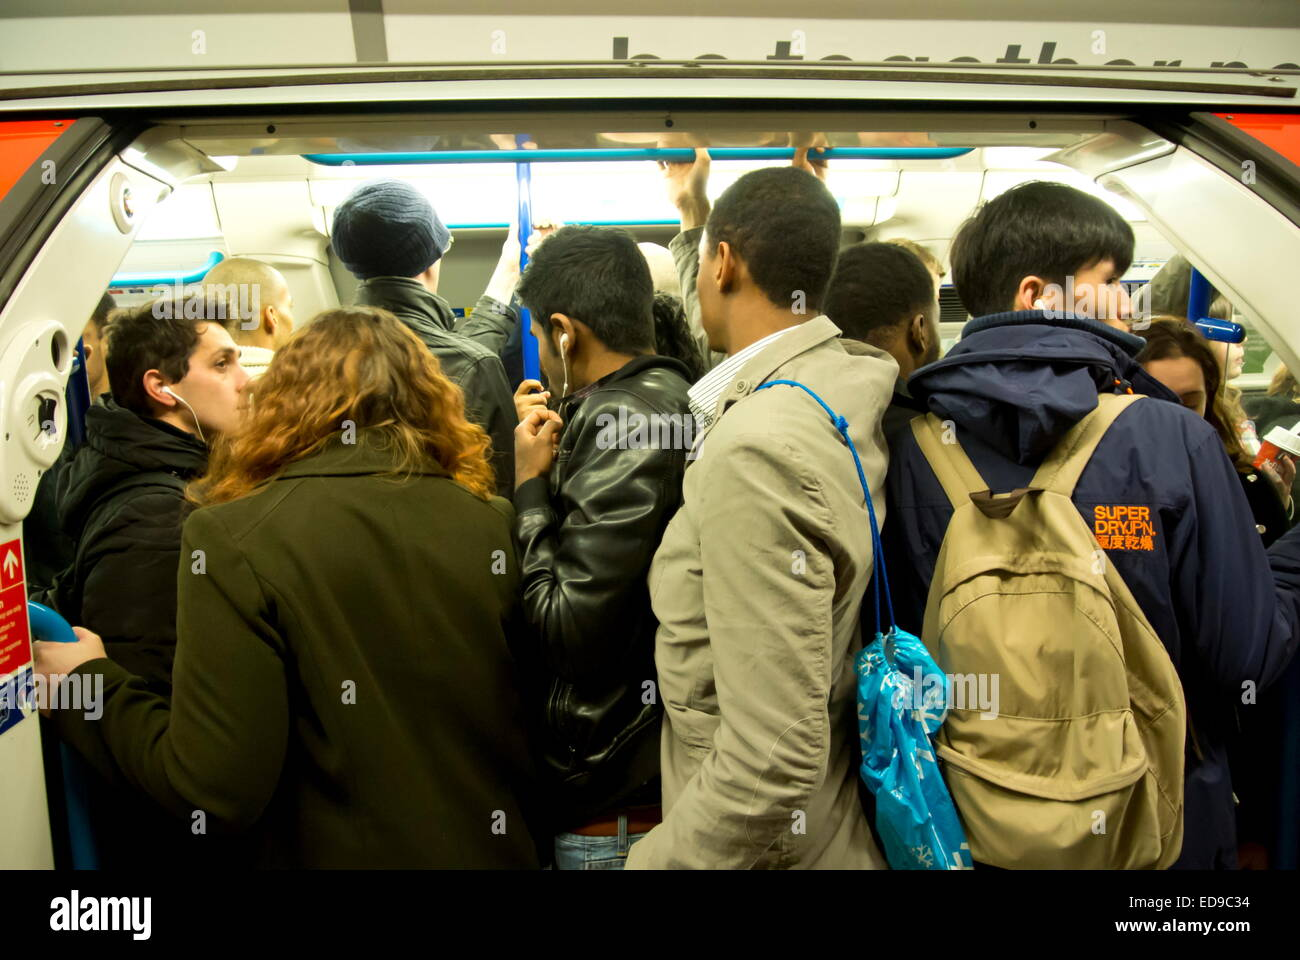 La foule des banlieusards bord d'un train du métro de Londres à Oxford Circus gare sur la ligne Victoria, Photo Stock